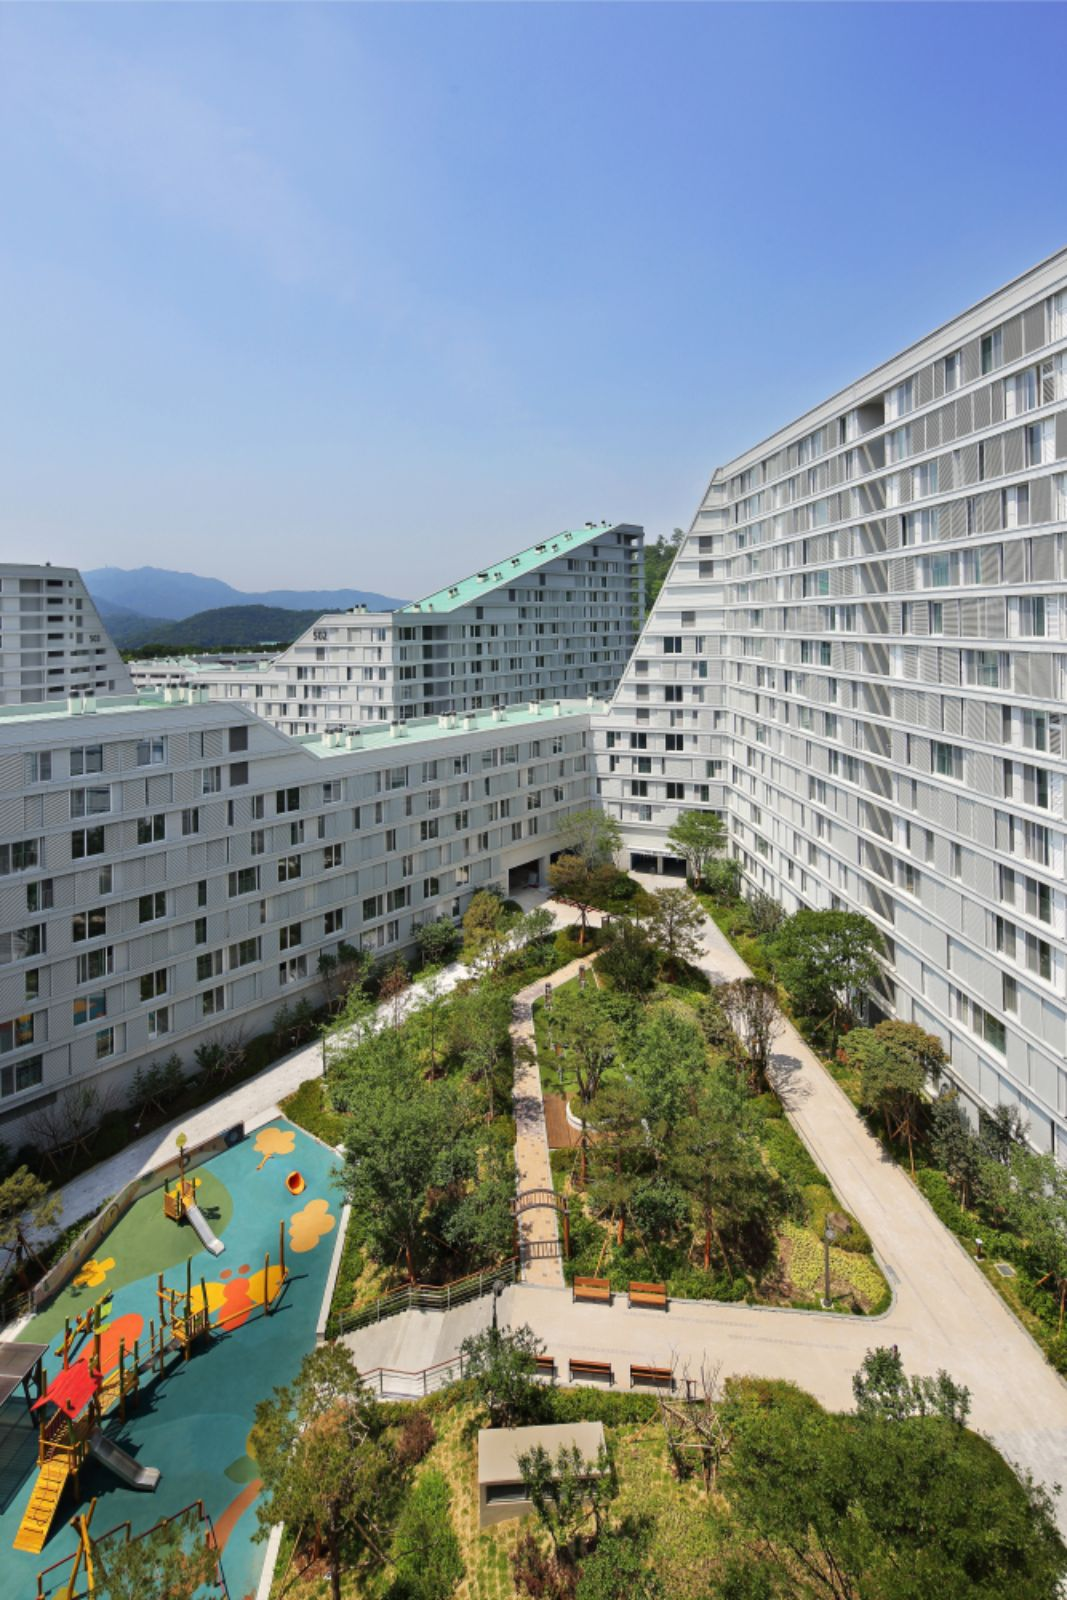 Gangnam A5 Housing Block